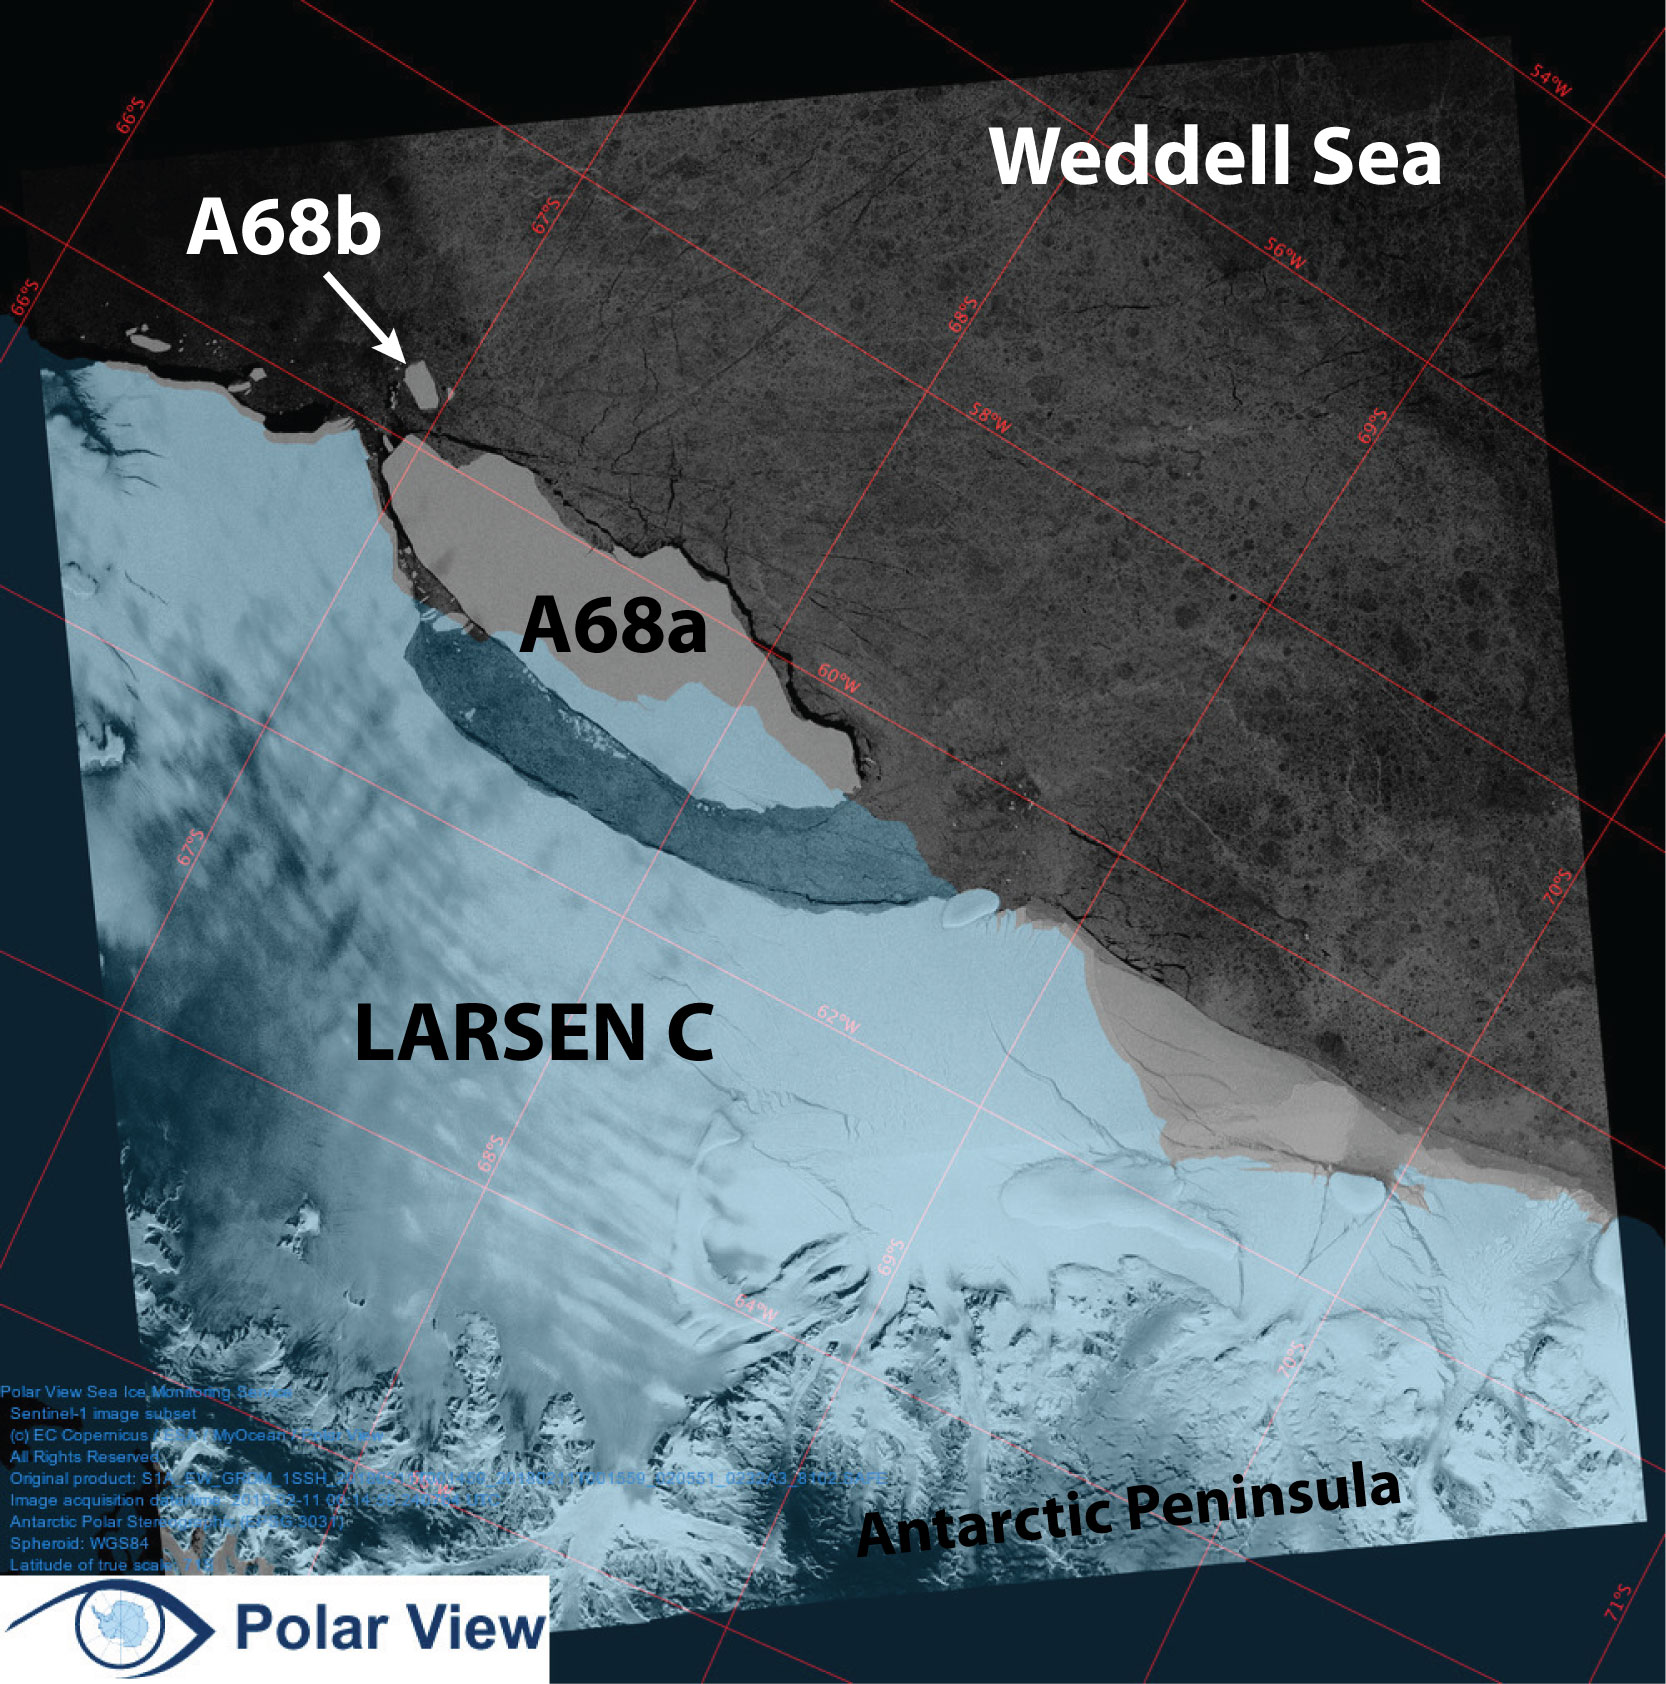 Iceberg A68 and the Larsen C Ice shelf captured from with the Sentinel-1 SAR sensor 11 February 2018.